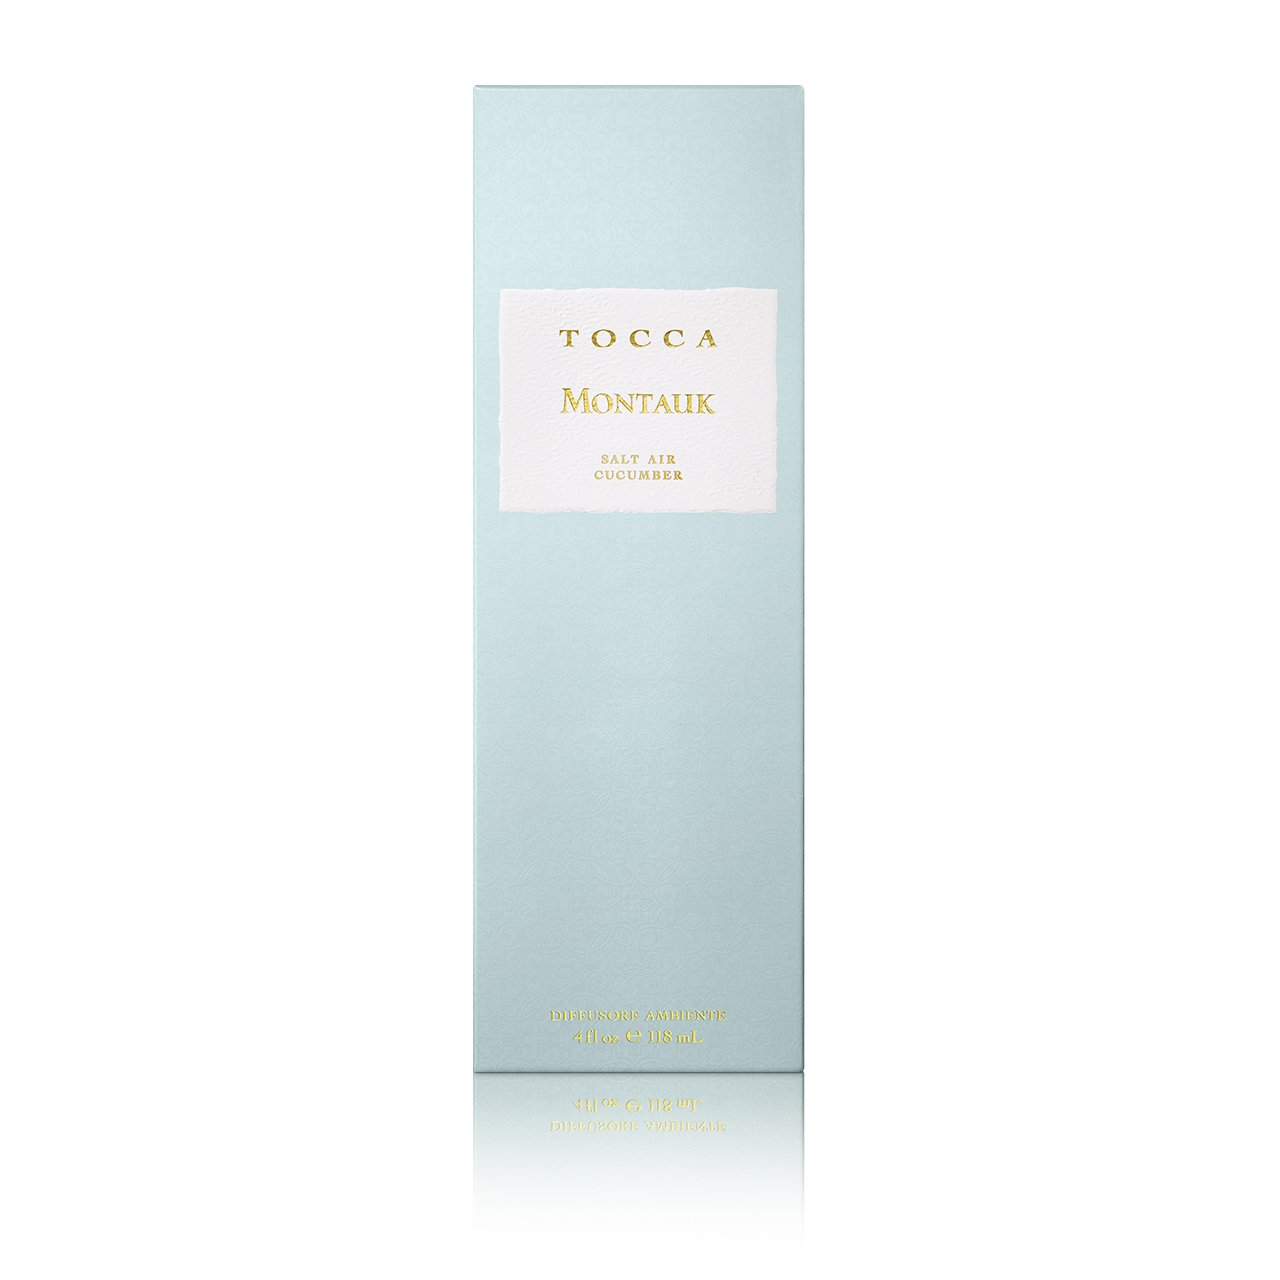 Tocca Montauk Salt Air & Cucumber Diffuser by Tocca (Image #2)